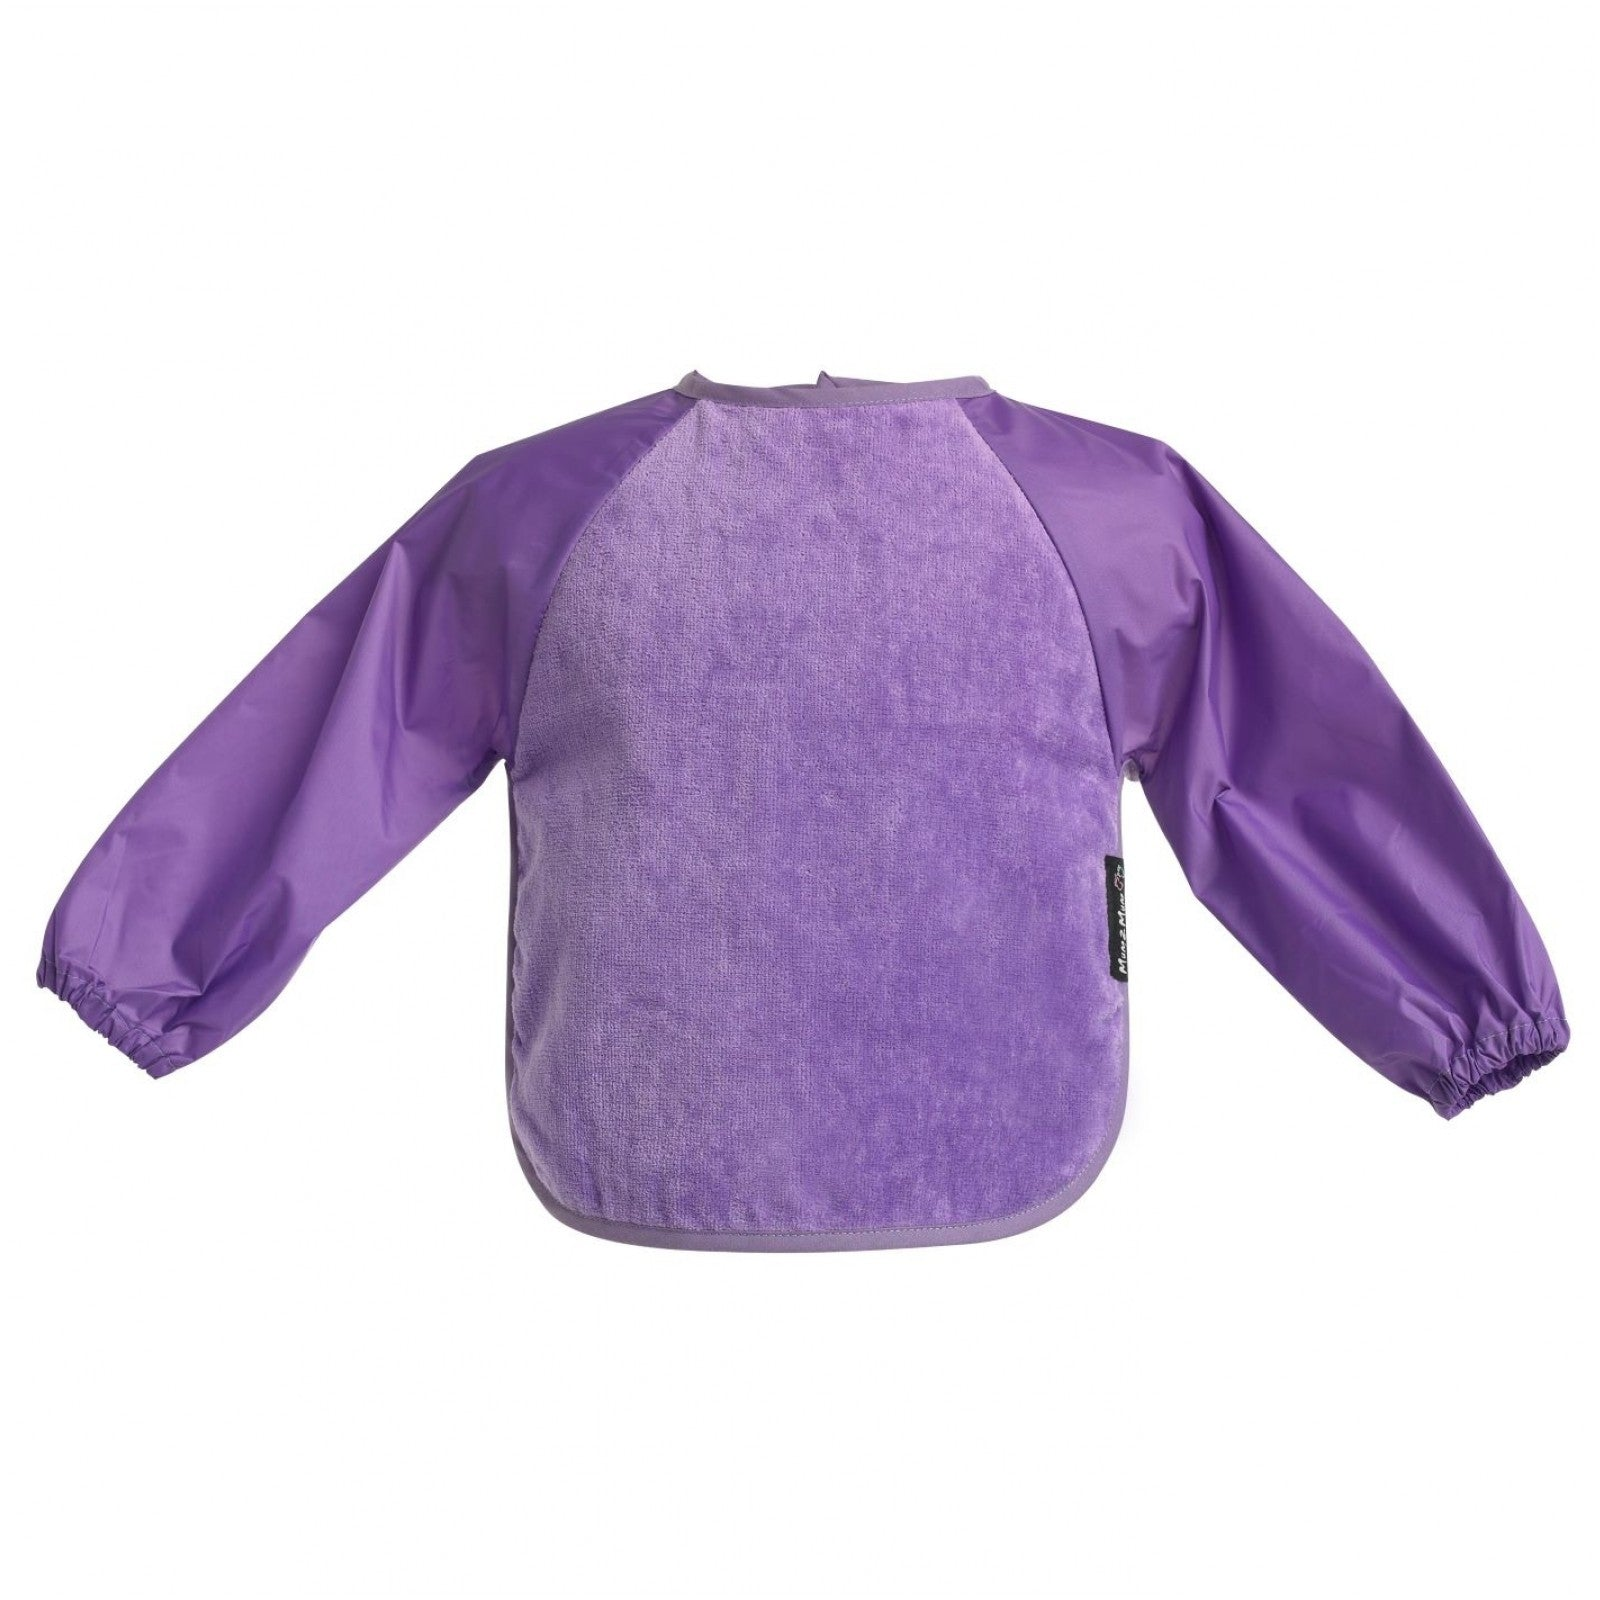 Sleeved Wonderbib Purple Worn